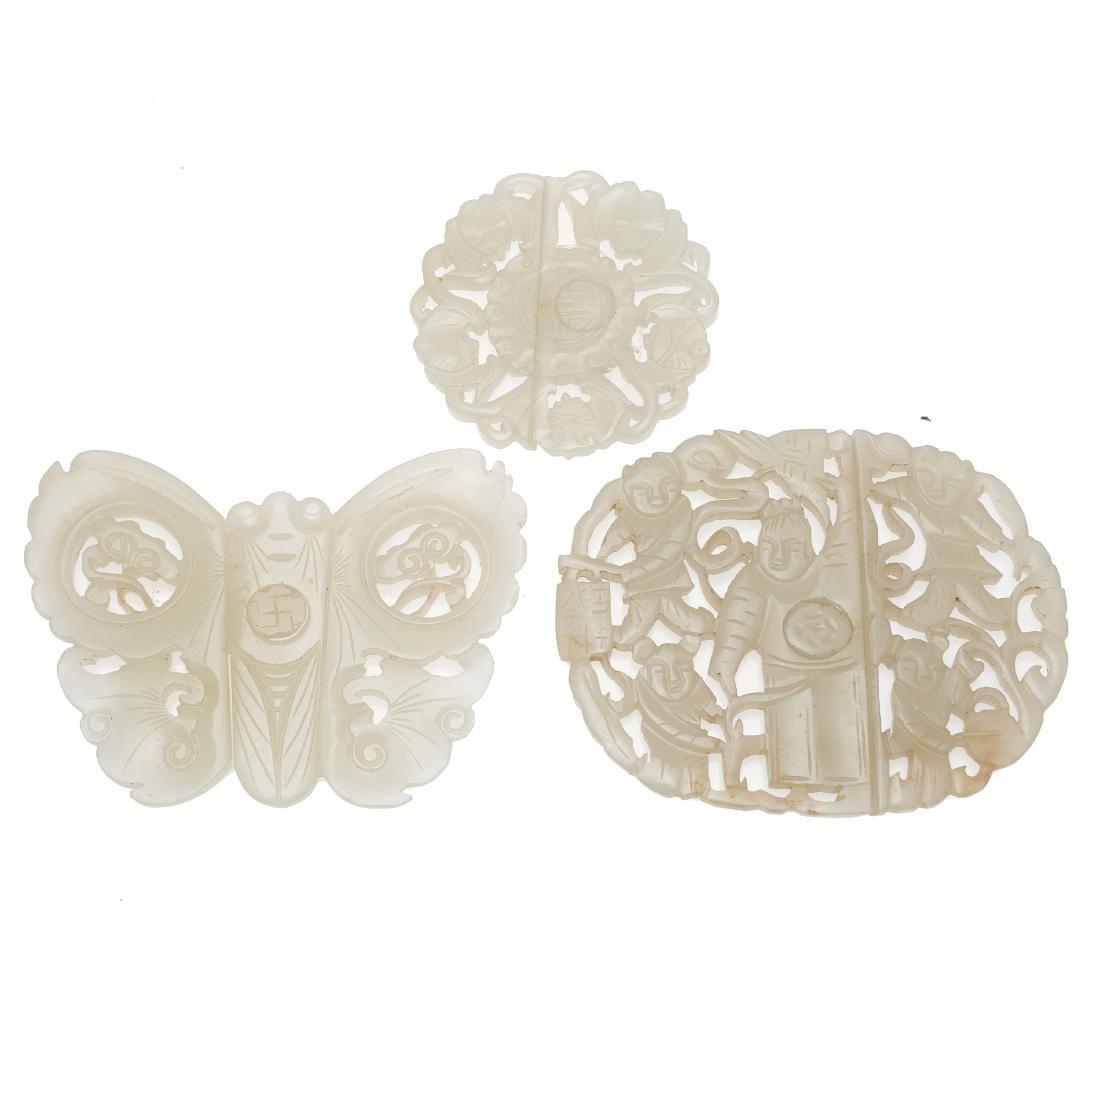 Three Chinese jade openwork belt buckles